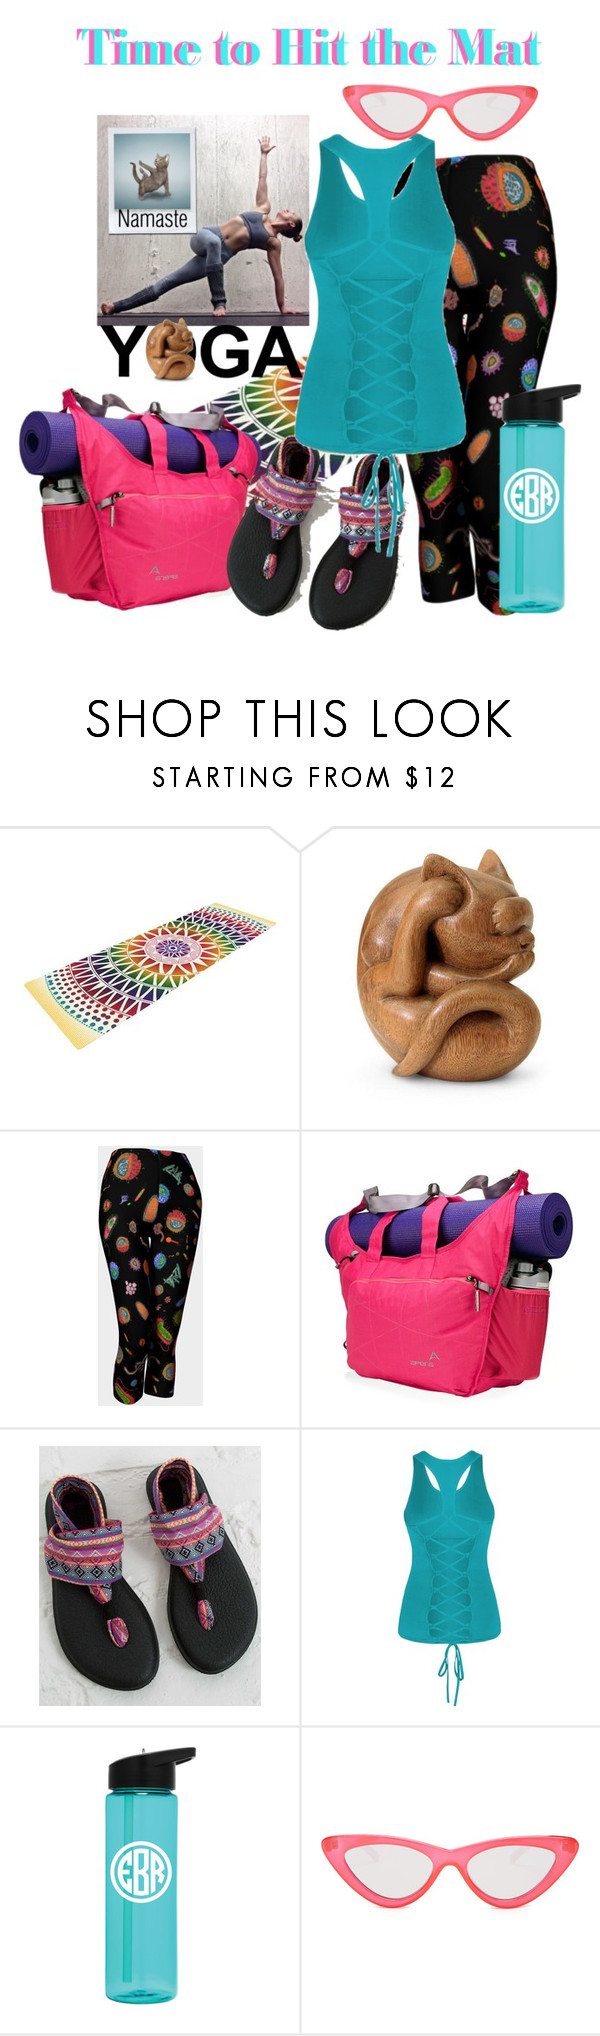 """time to hit the mat"" by daincyng ❤ liked on Polyvore featuring NOVICA, Apera, sanuk, Le Specs and yoga"